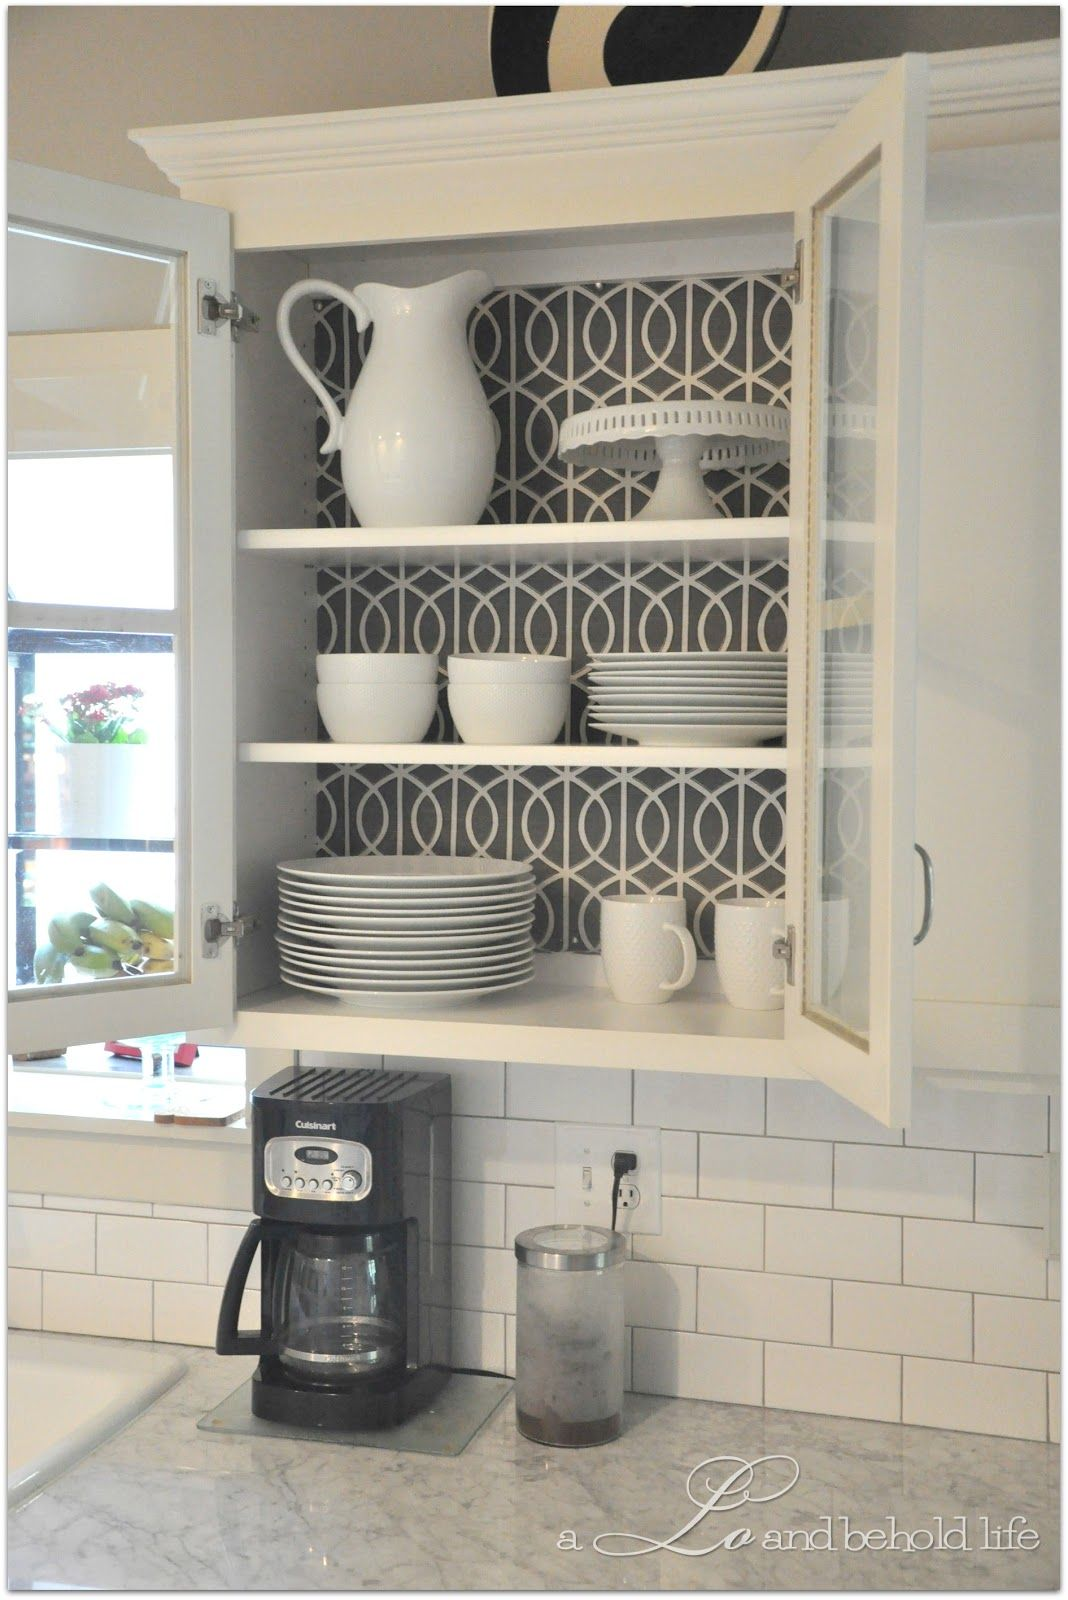 Kitchen Glass Cabinets Renovations Cost Try Adding Wallpaper Or Fabric To The Back Wall Of Your Cupboards Give Them A Fresh New Look